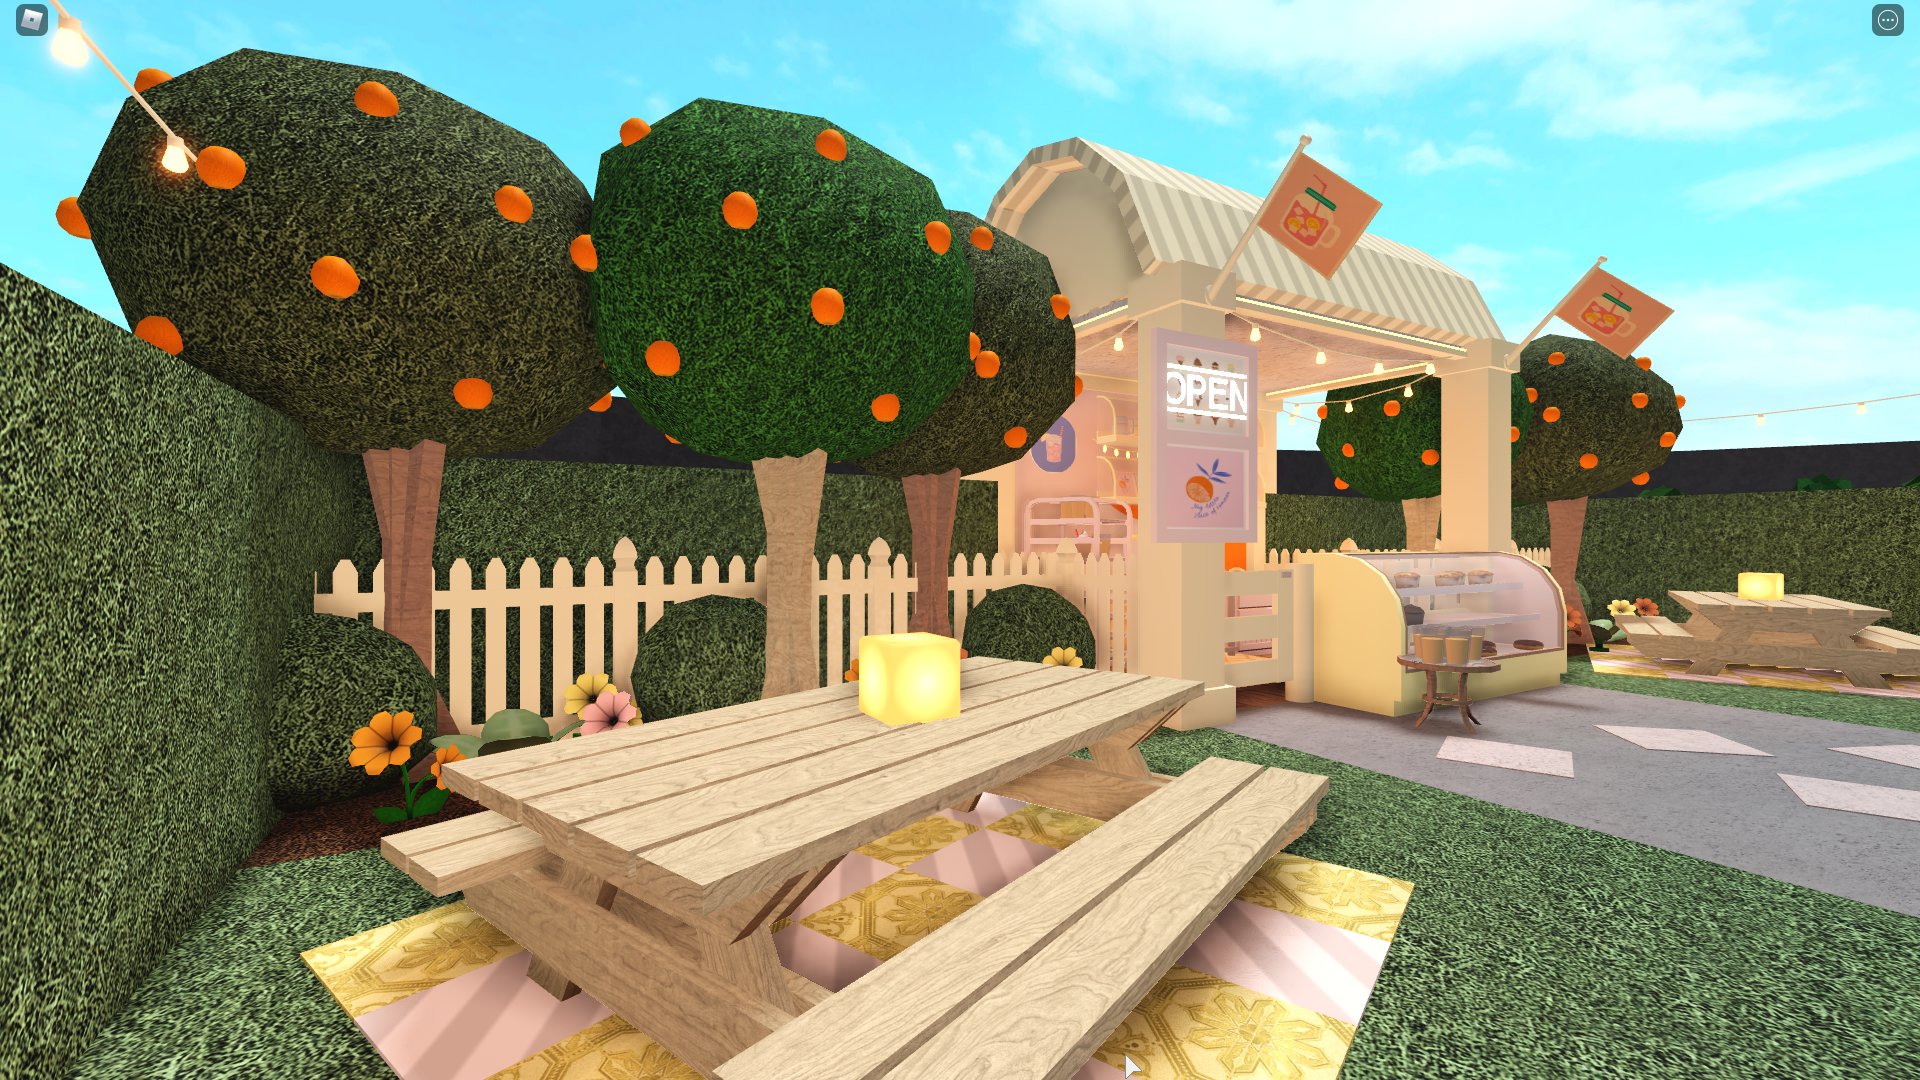 Code Rose On Twitter Building A Lemonade Stand In Bloxburg Forcing People To Buy It Https T Co Mq8mjlufhb